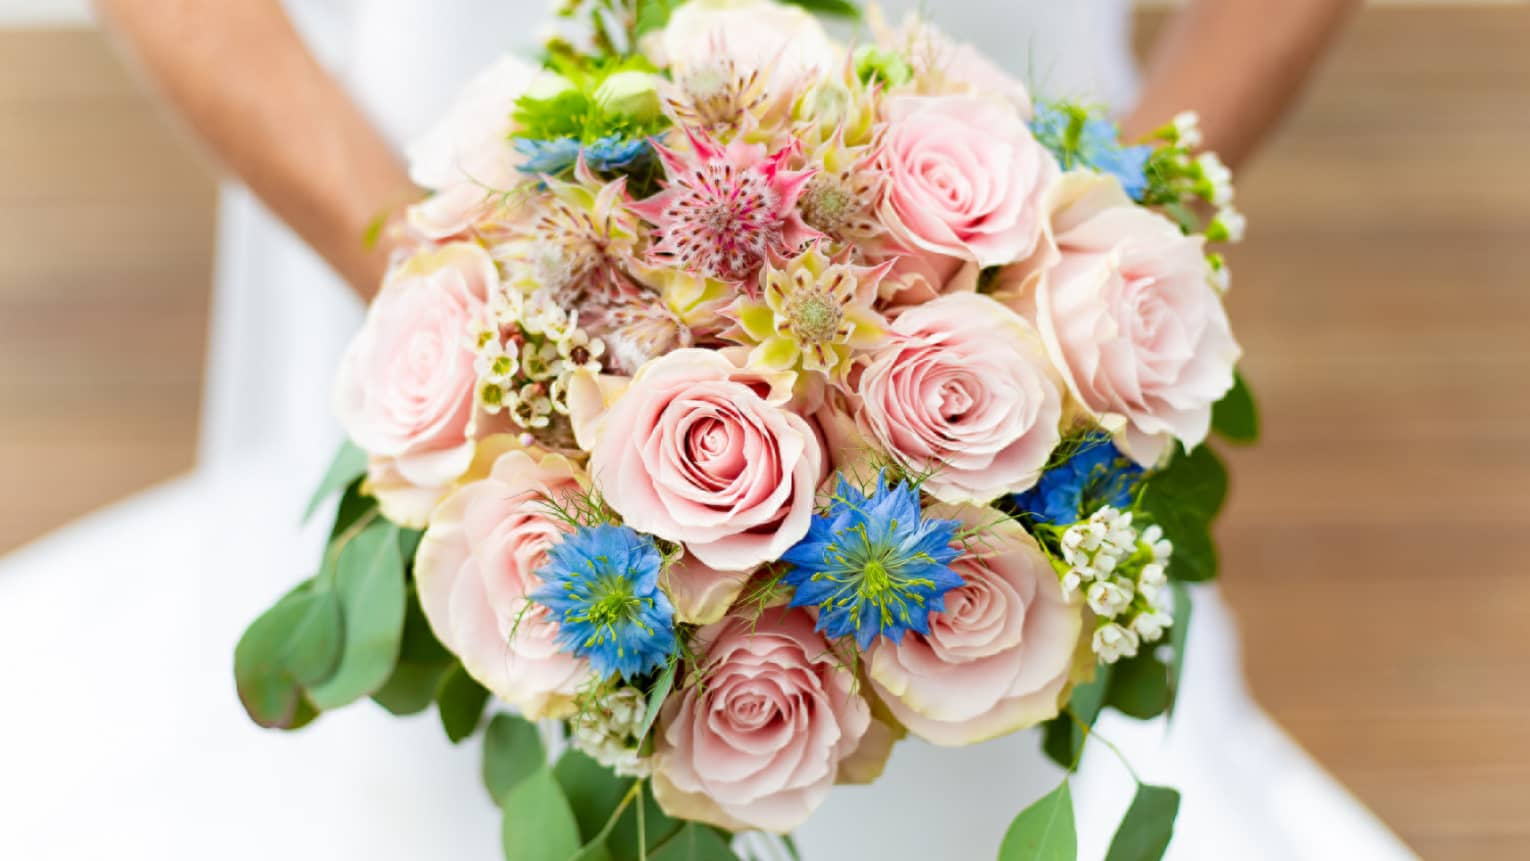 Close-up of bride holding floral wedding bridal bouquet with pink roses, blue flowers